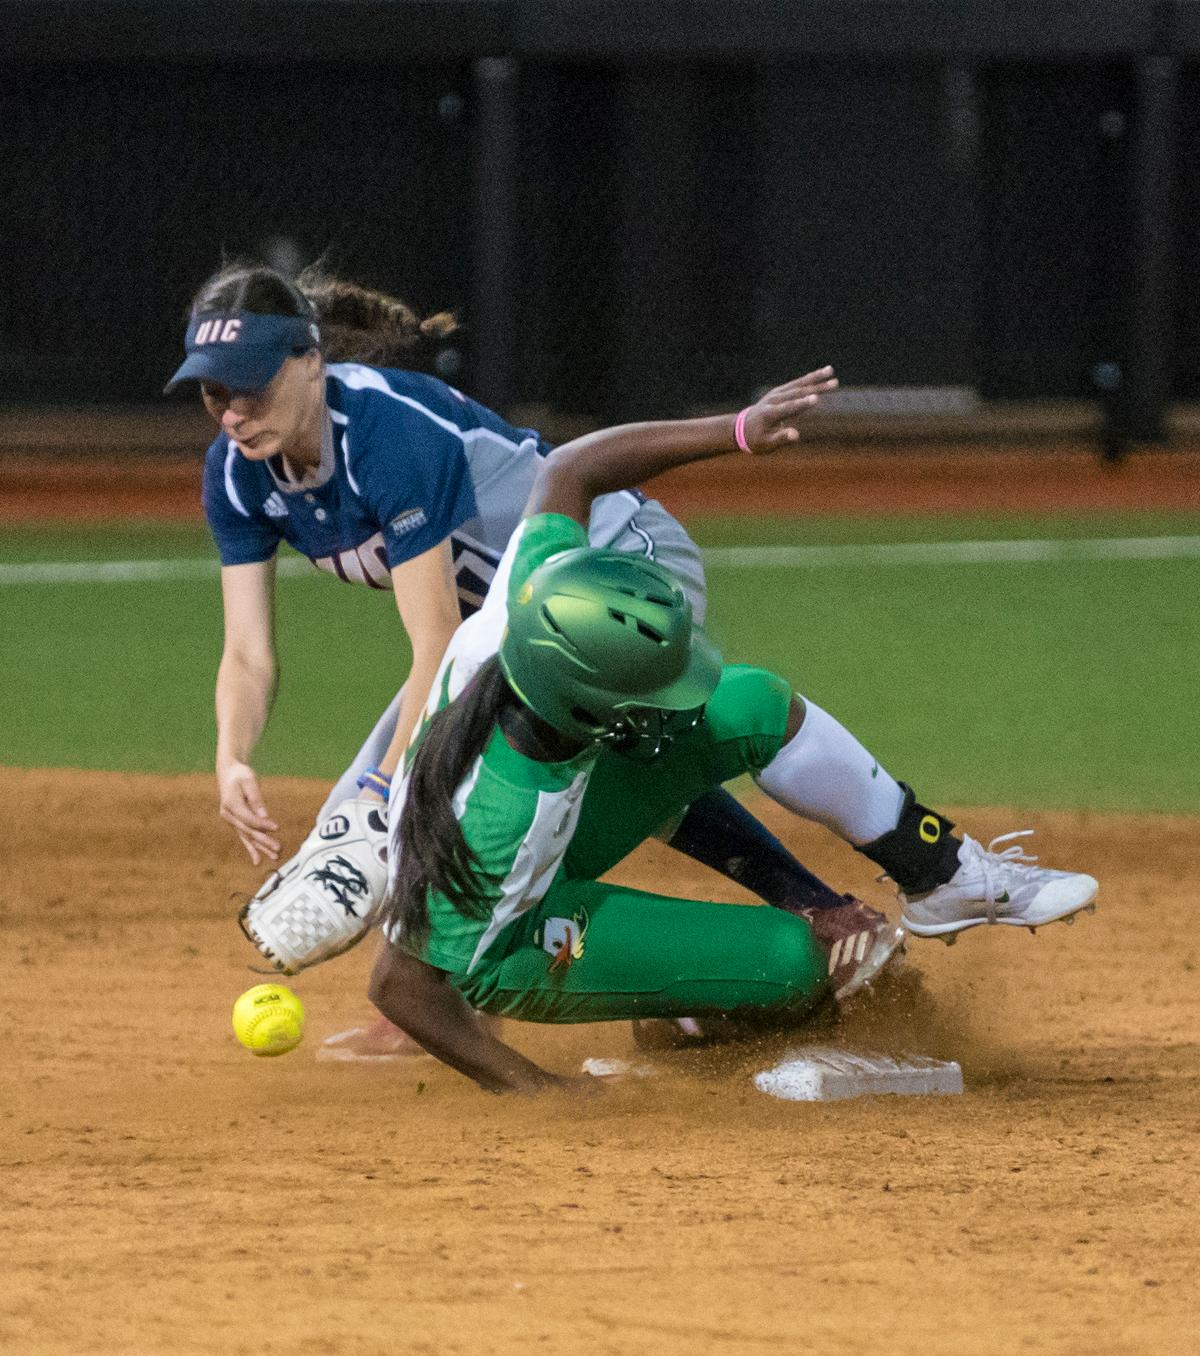 Oregon Ducks Cherish Burks (#31) safely slides into second. The No. 3 Oregon Ducks defeated the University of Illinois Chicago Flames 13-0 with the run-rule on Saturday night at Jane Sanders Stadium. The Ducks scored in every inning and then scored nine runs at the bottom of the fourth. The Oregon Ducks are now 22-0 in NCAA regional games. The Oregon Ducks play Wisconsin next on Saturday, May 20 at 2pm at Jane Sanders Stadium. Photo by Cheyenne Thorpe, Oregon News Lab